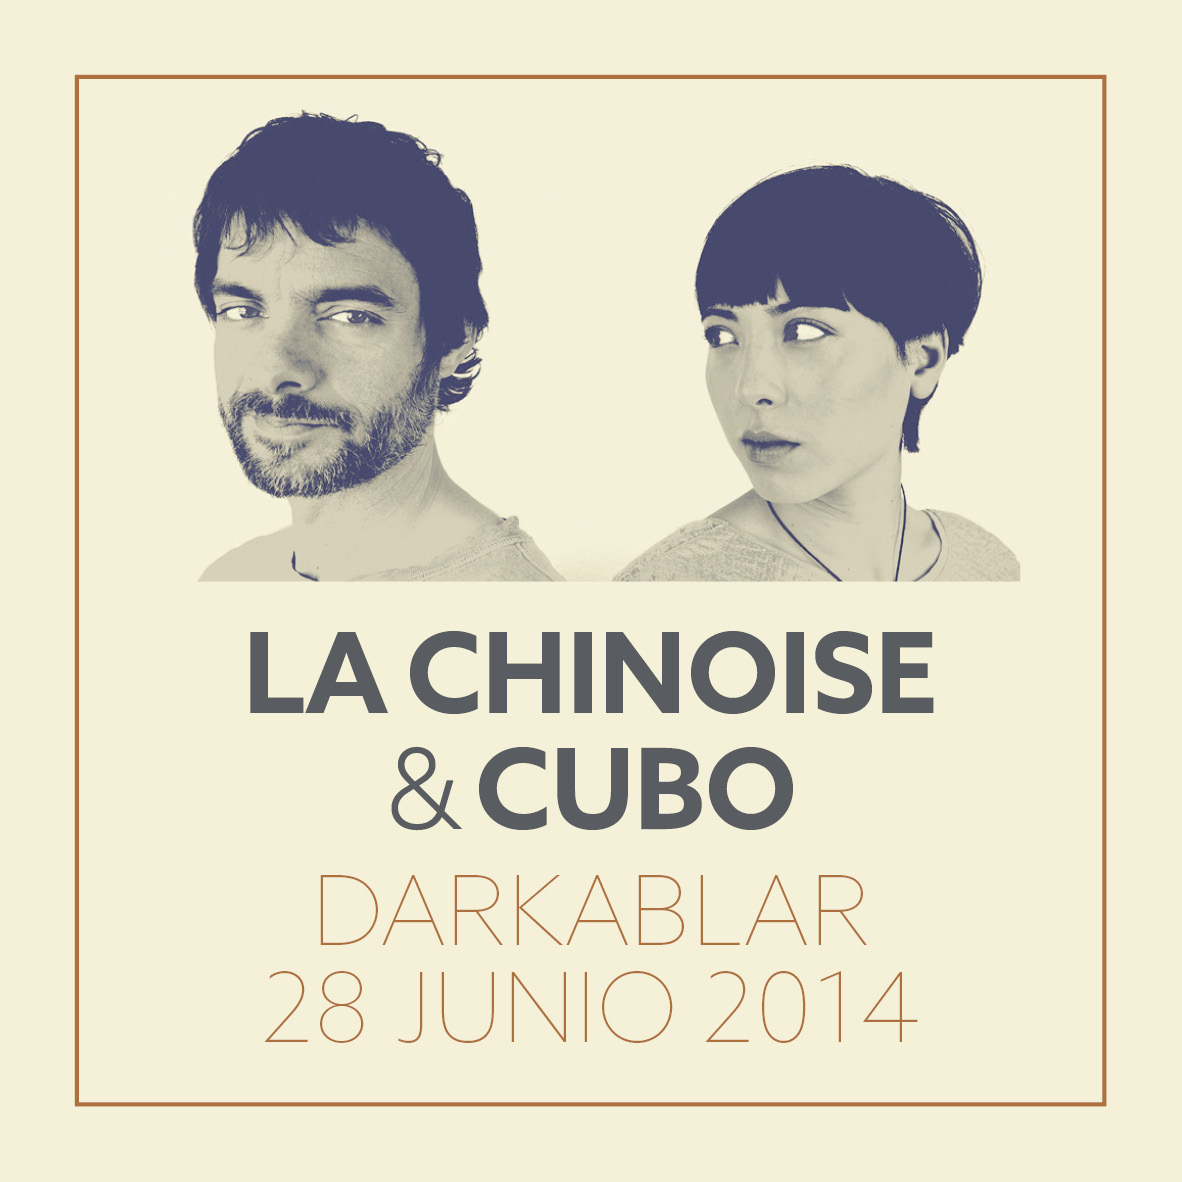 chinoisecubo_darkablar28junio14